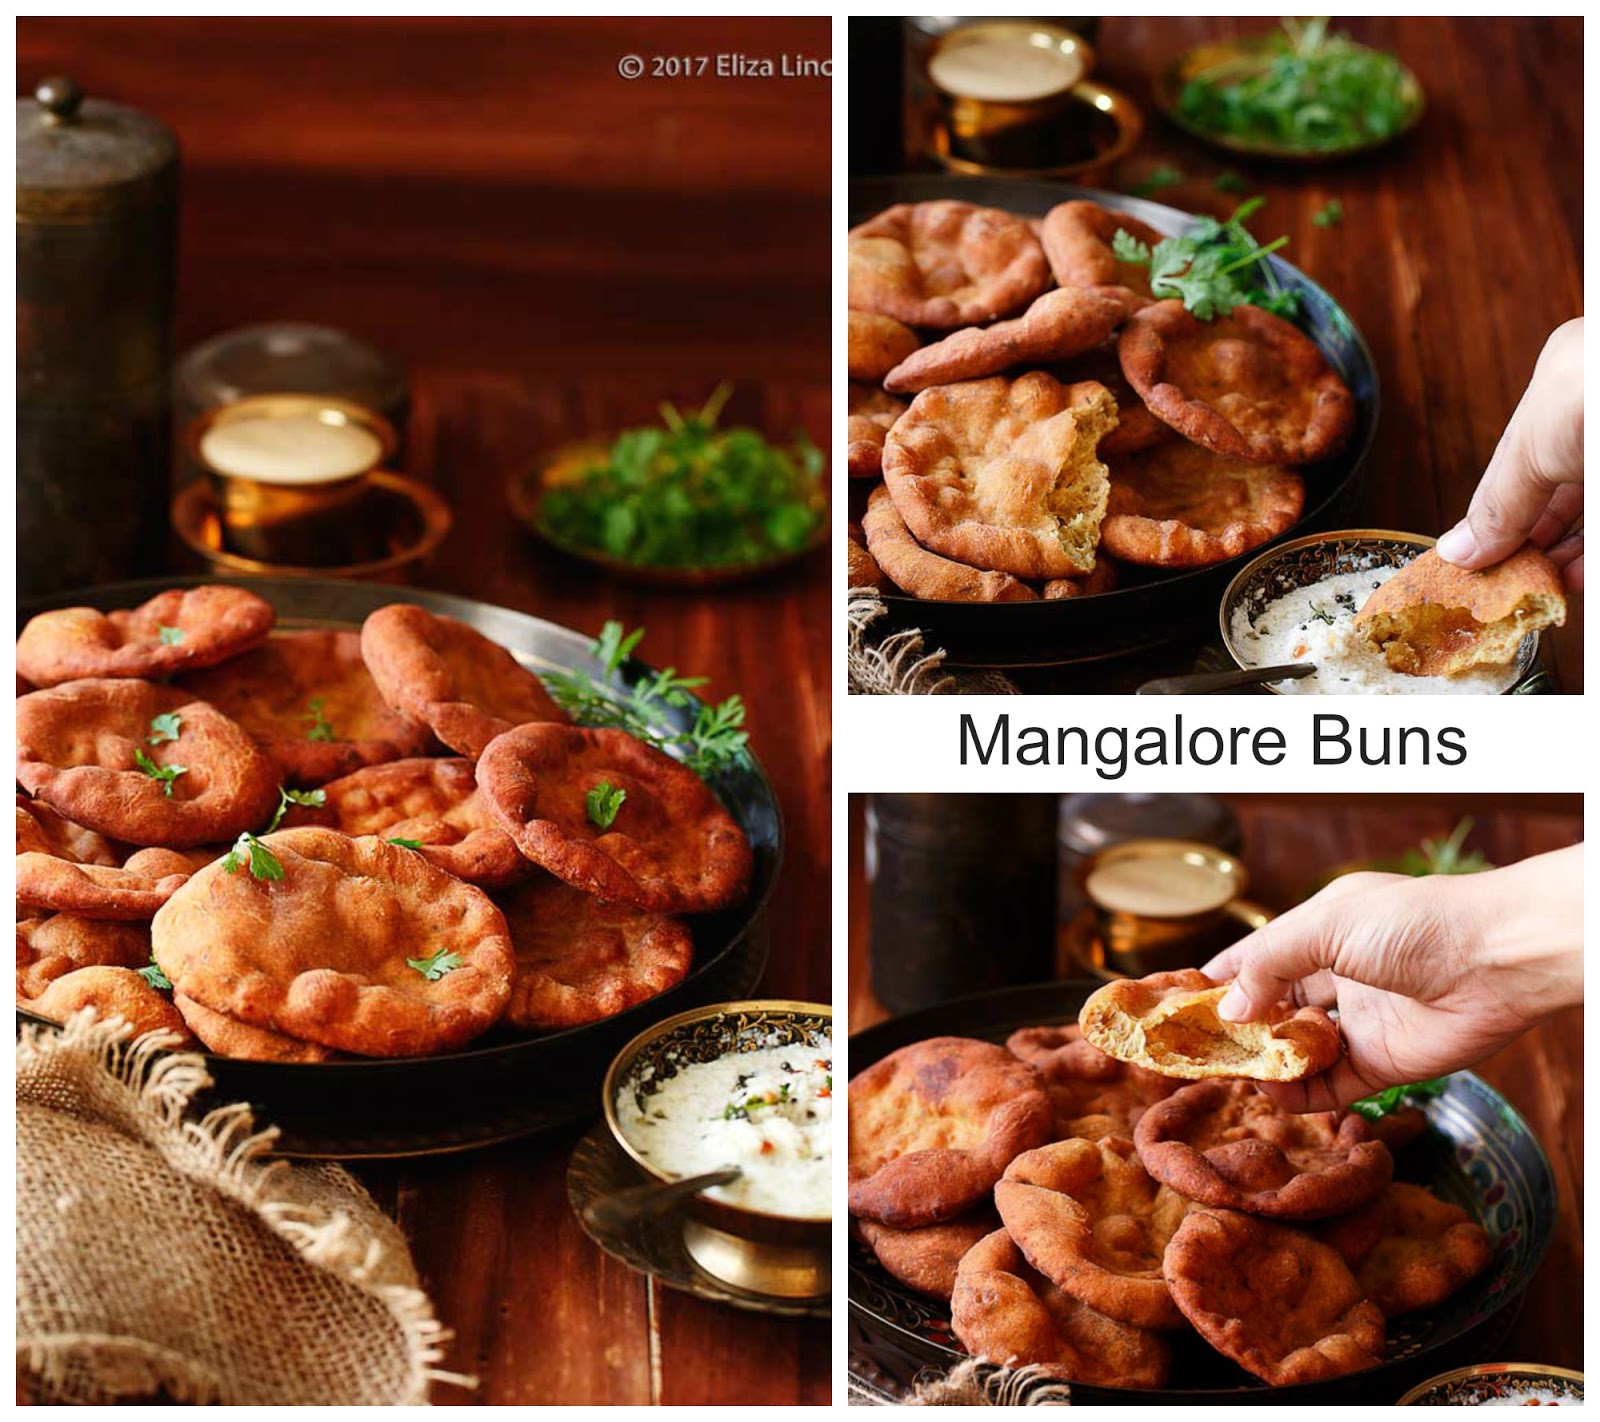 Mangalore buns recipe